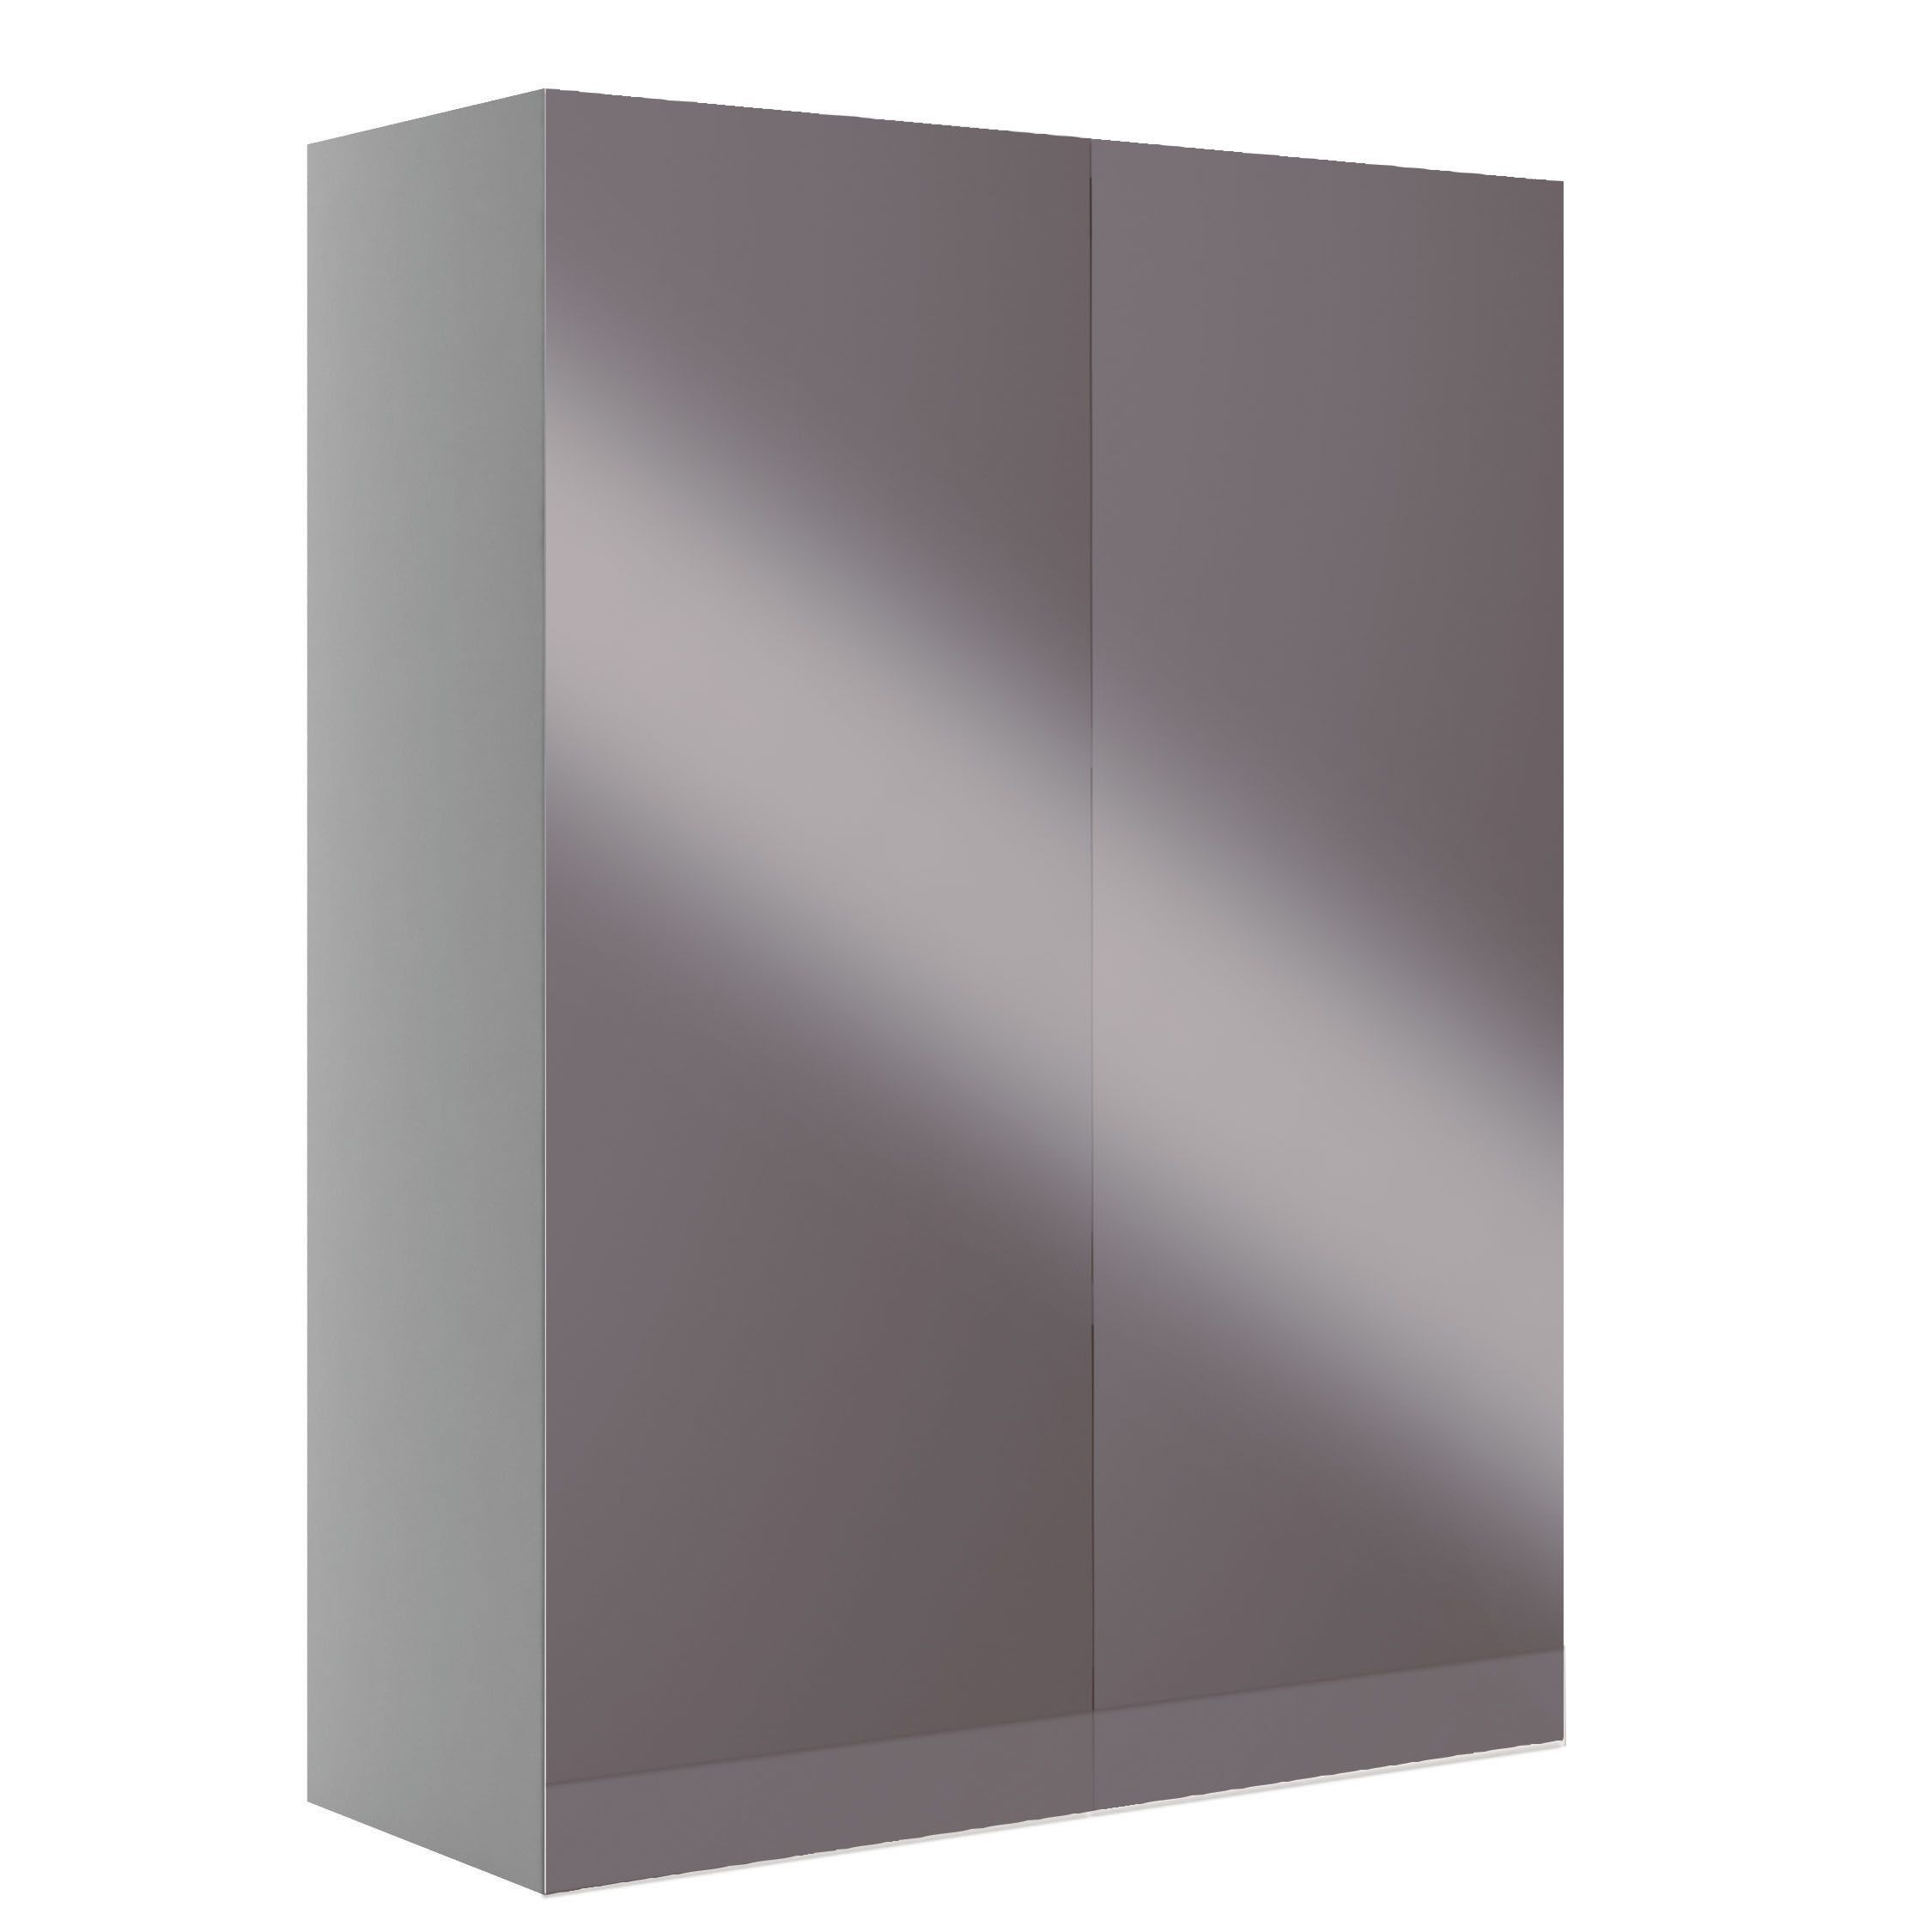 Cooke Lewis Marletti Gloss Anthracite Double Door Wall Cabinet W